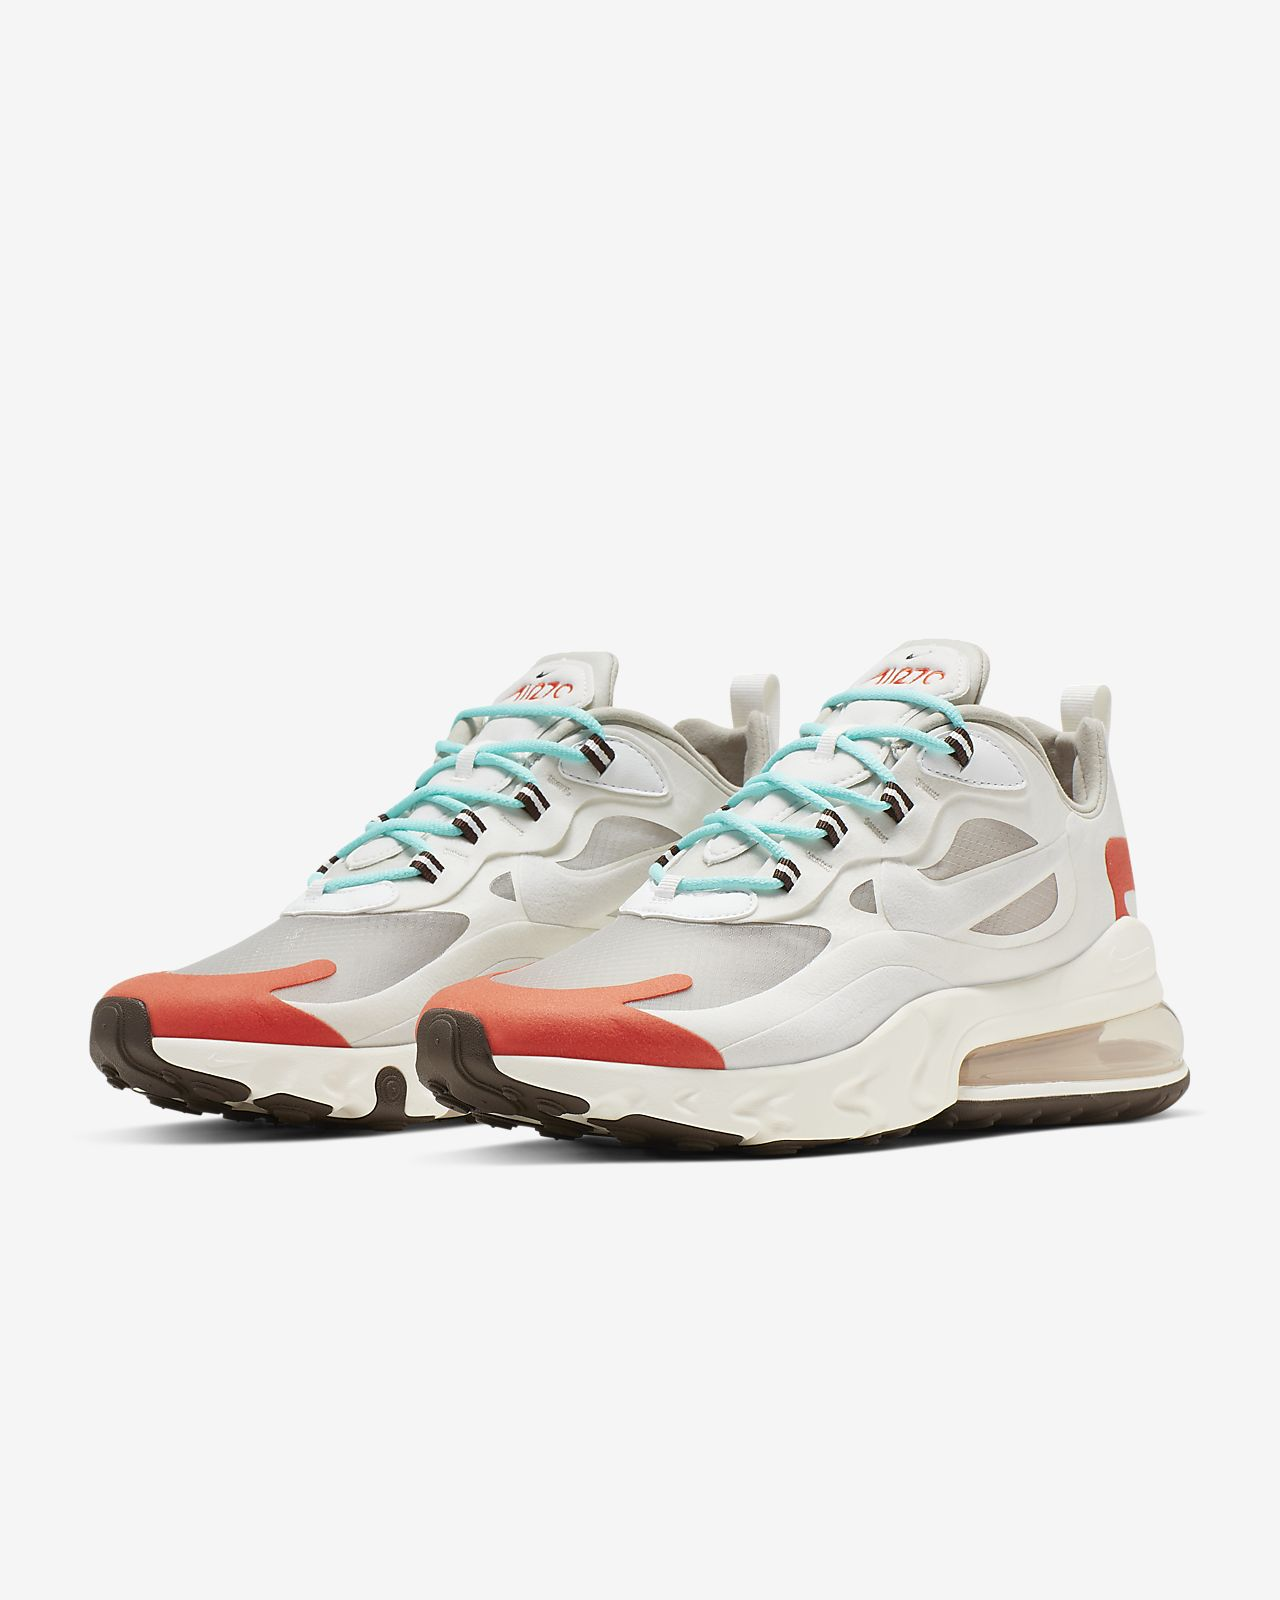 NIKE AIR MAX 270 REACT LIGHT BEIGE RED AO4971 200 bauhaus